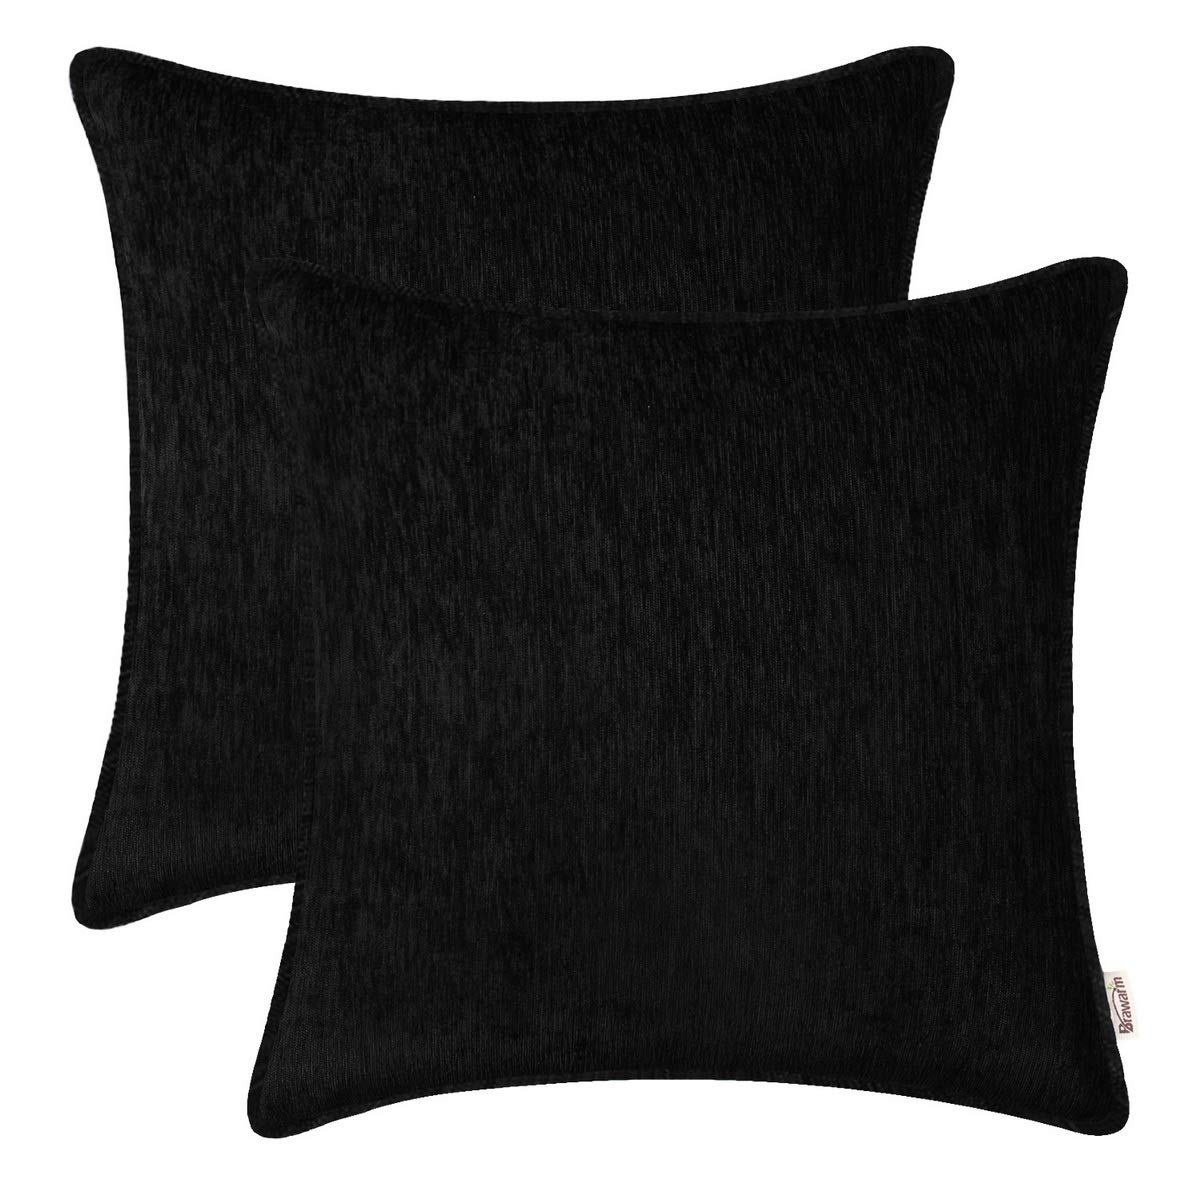 BRAWARM Pack of 2 Cozy Throw Pillow Covers Cases for Sofa Couch Home Decoration Solid Dyed Striped Soft Chenille with Piping 22 X 22 Inches Black